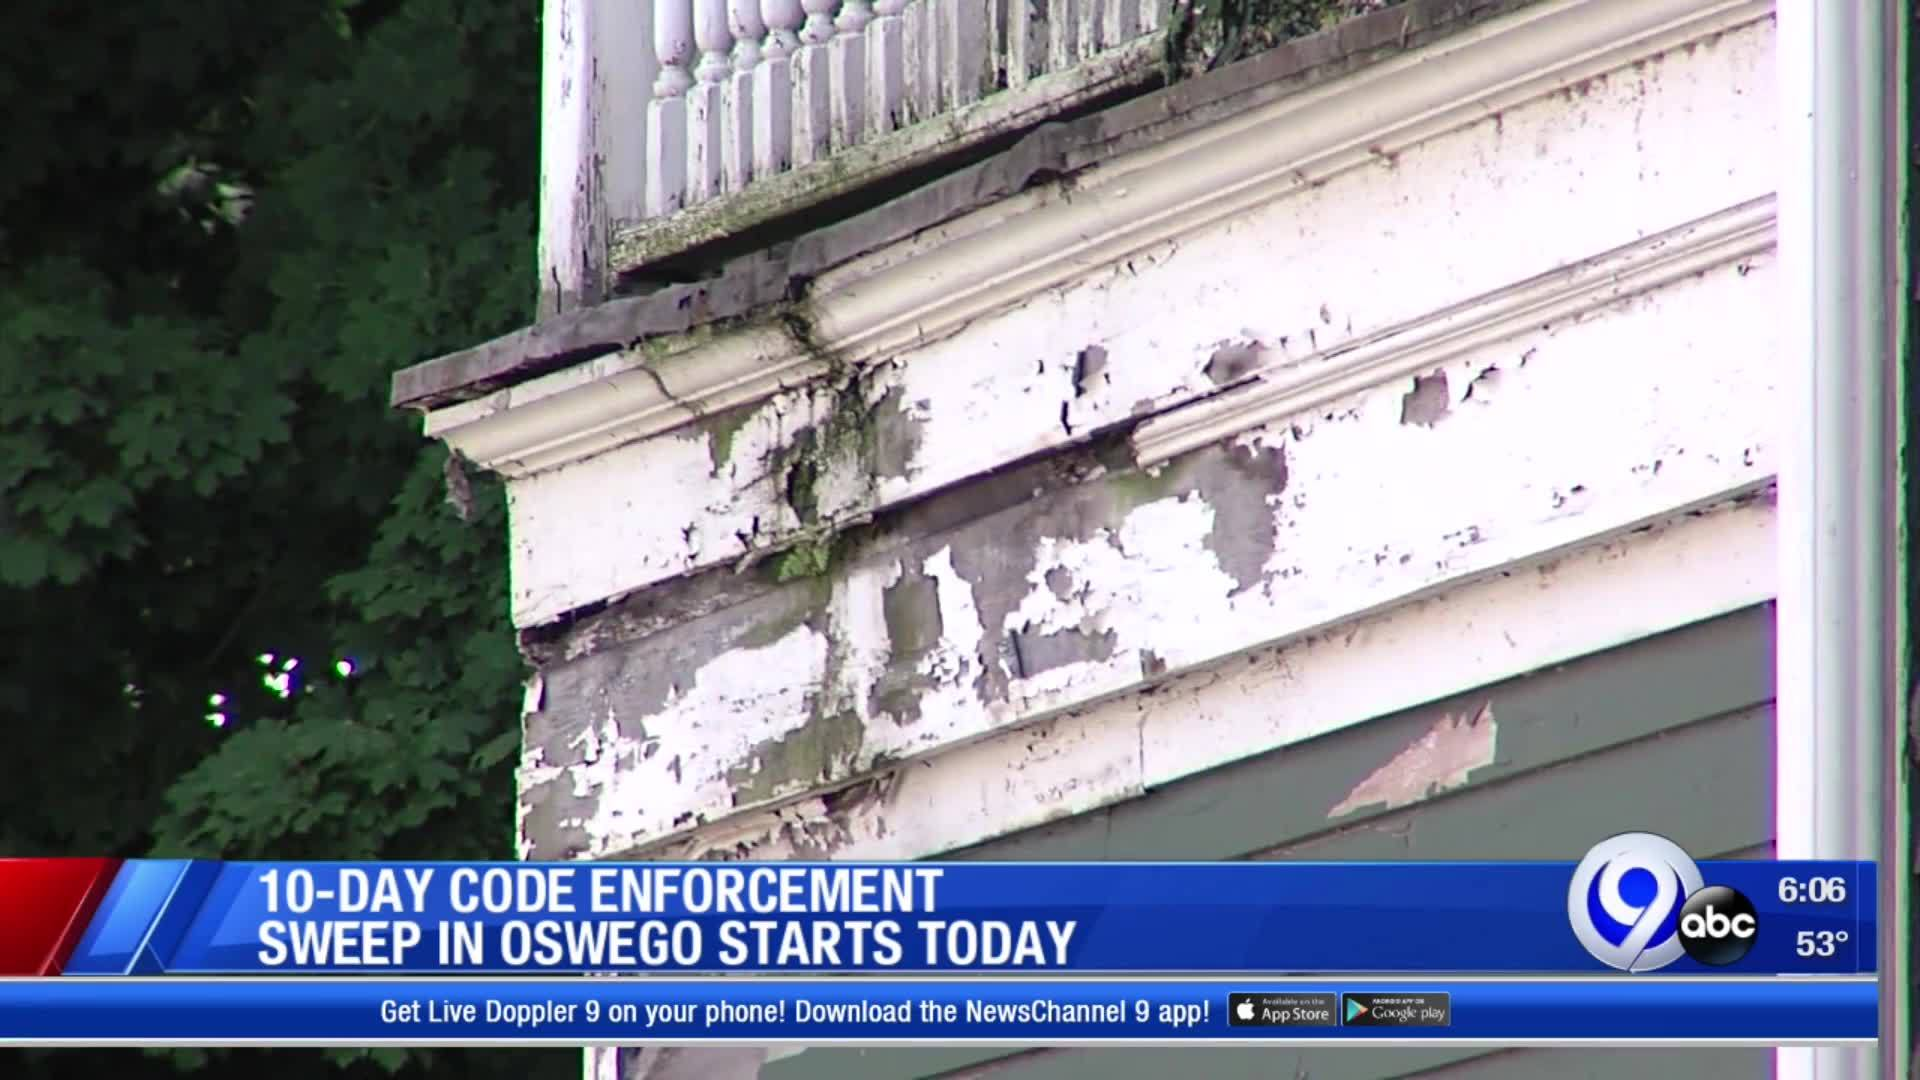 City_of_Oswego_begins_10_day_code_enforc_6_20190517131211